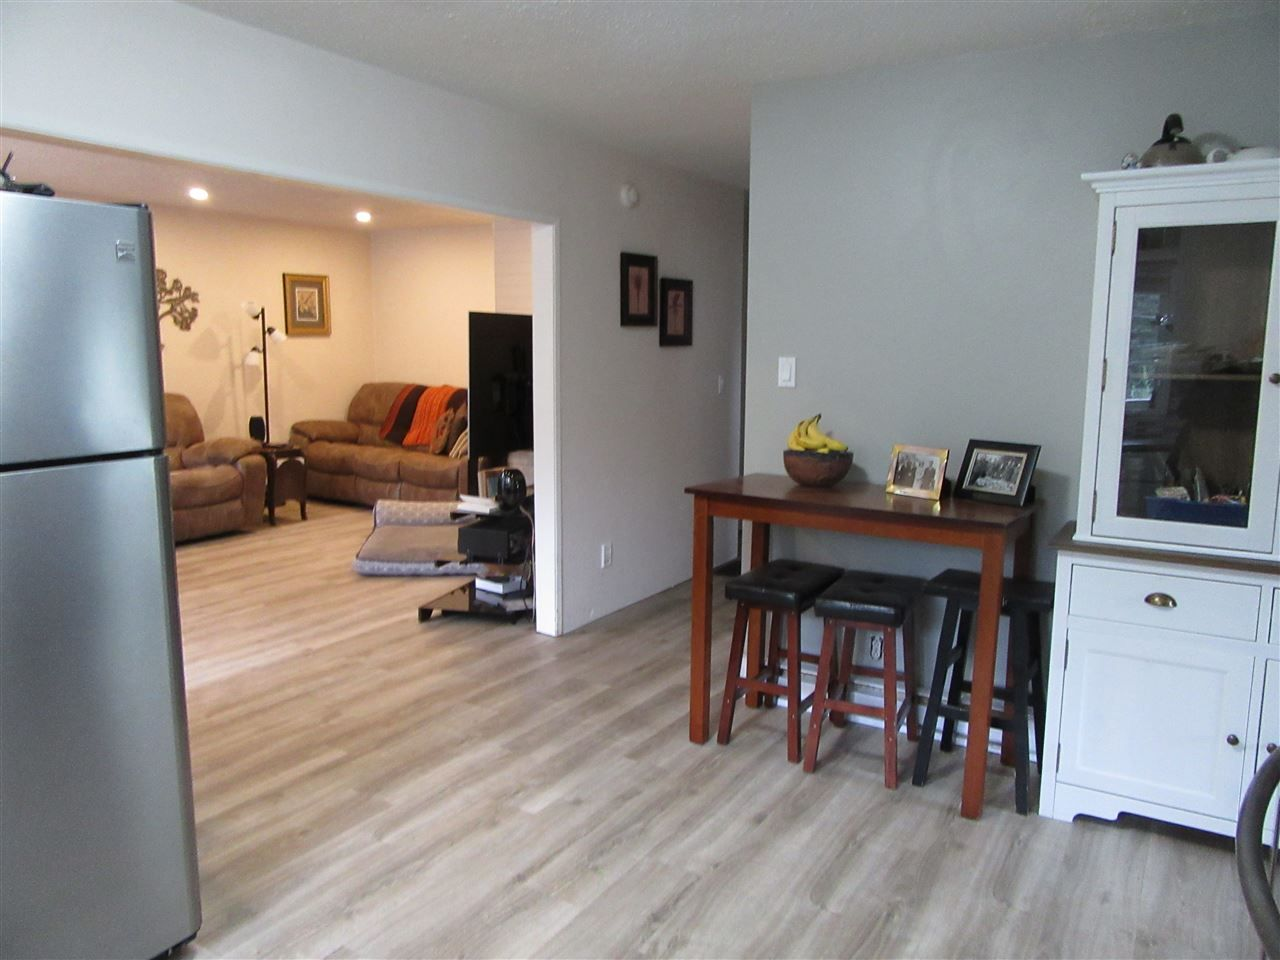 Photo 10: Photos: 4261 ARABIAN Road in Prince George: Emerald House for sale (PG City North (Zone 73))  : MLS®# R2404002